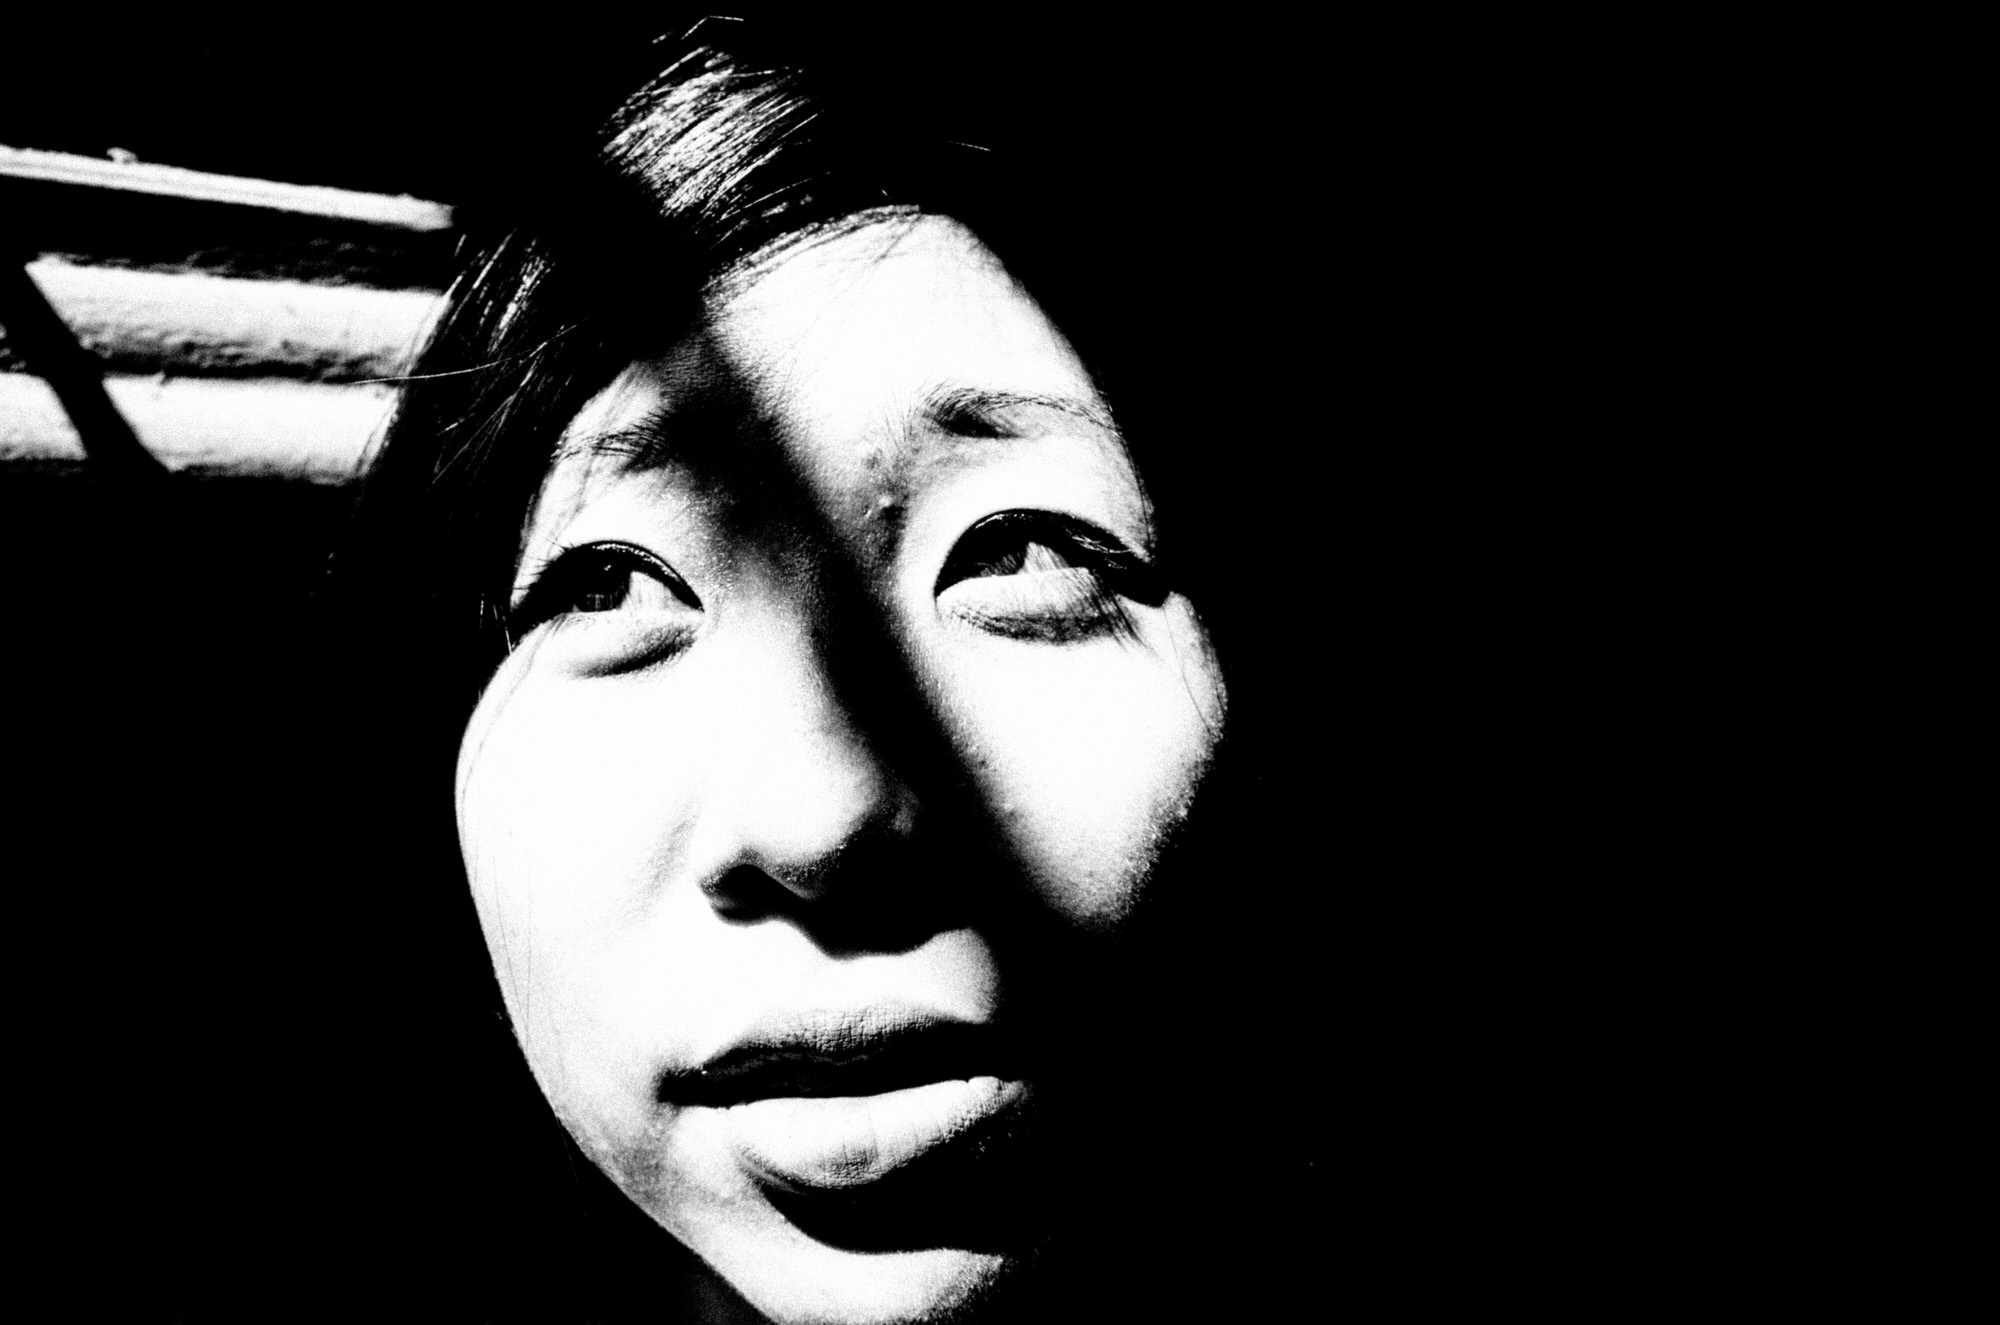 eric kim photography black and white - 33036325721_74326101be_o